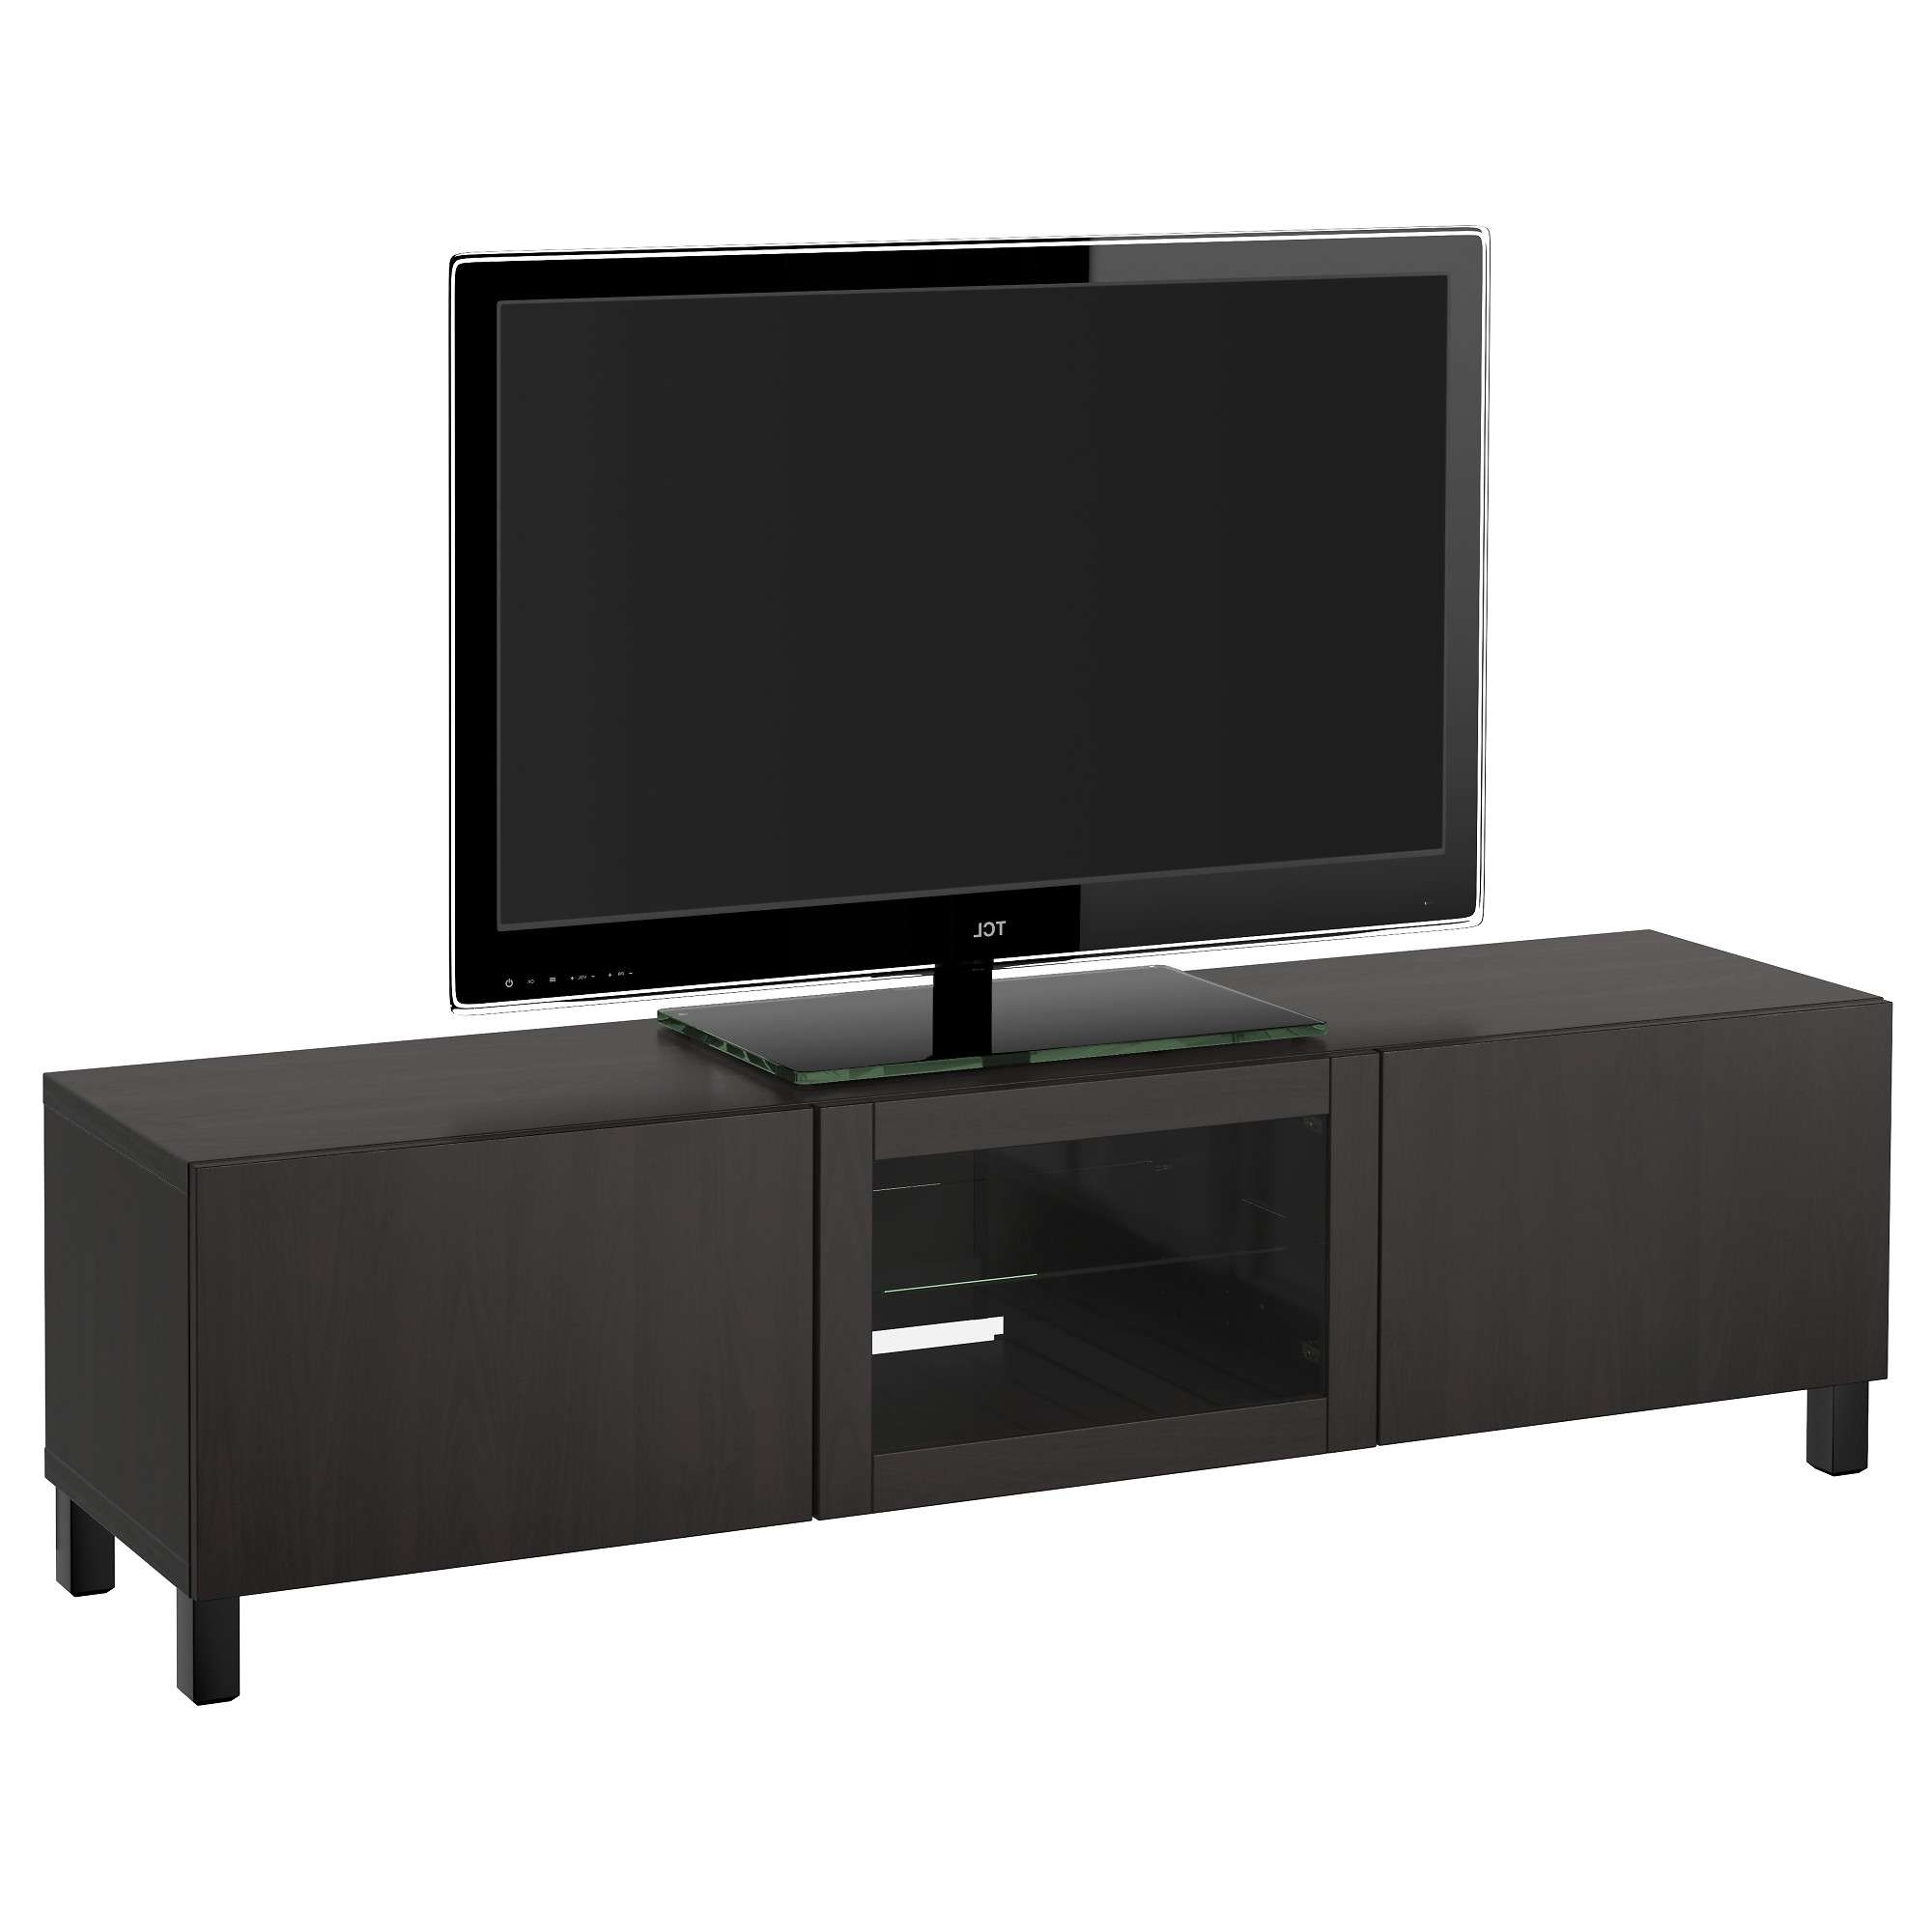 Tv Stands & Entertainment Centers – Ikea Regarding Black Tv Cabinets With Doors (View 7 of 20)